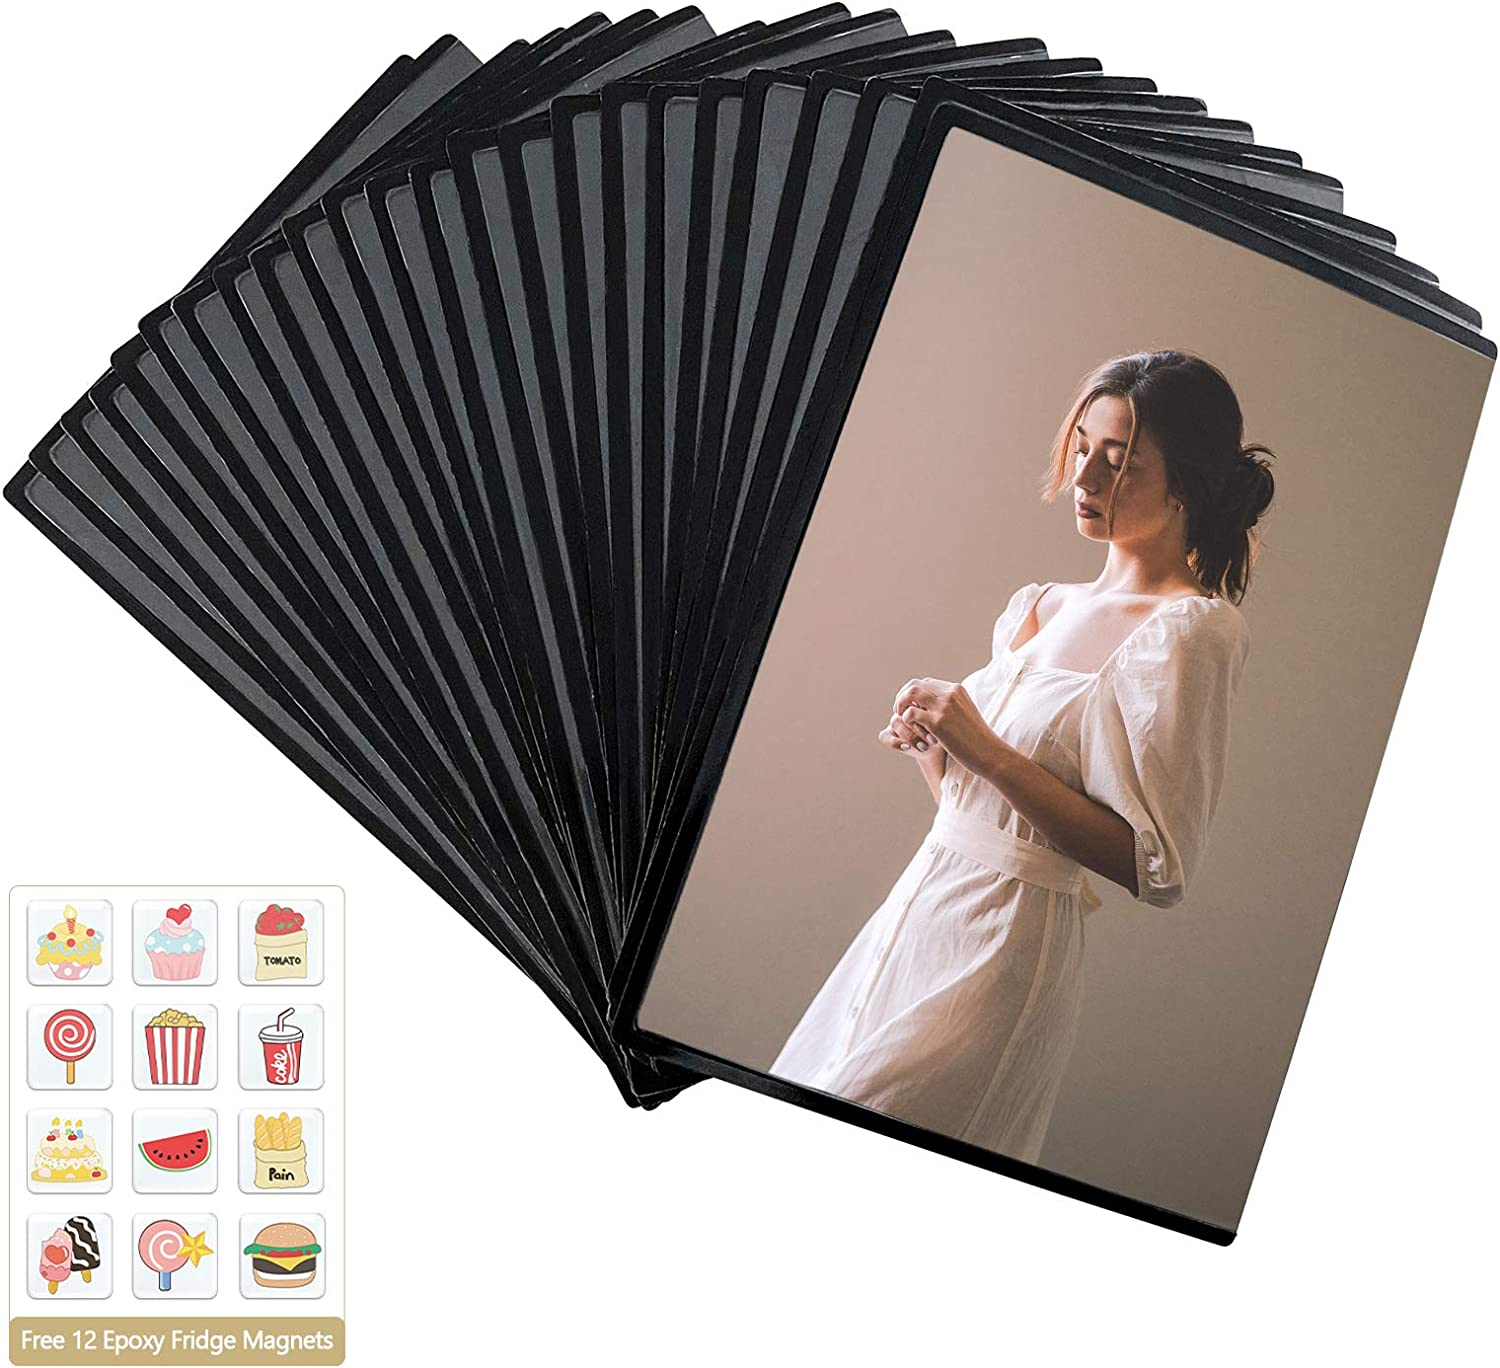 Mingting 24 Pcs Magnetic Picture Frame,Holds 4 X 6 Inches Pictures,Reusable Black Magnetic Fridge Photo Sleeves with Clear Pocket for Refrigerator,Locker, Office Cabinet,with Free Removable 12 Pcs Food Fridge Magnet (Magnetic Photo Pocket & Magnet Sticker)